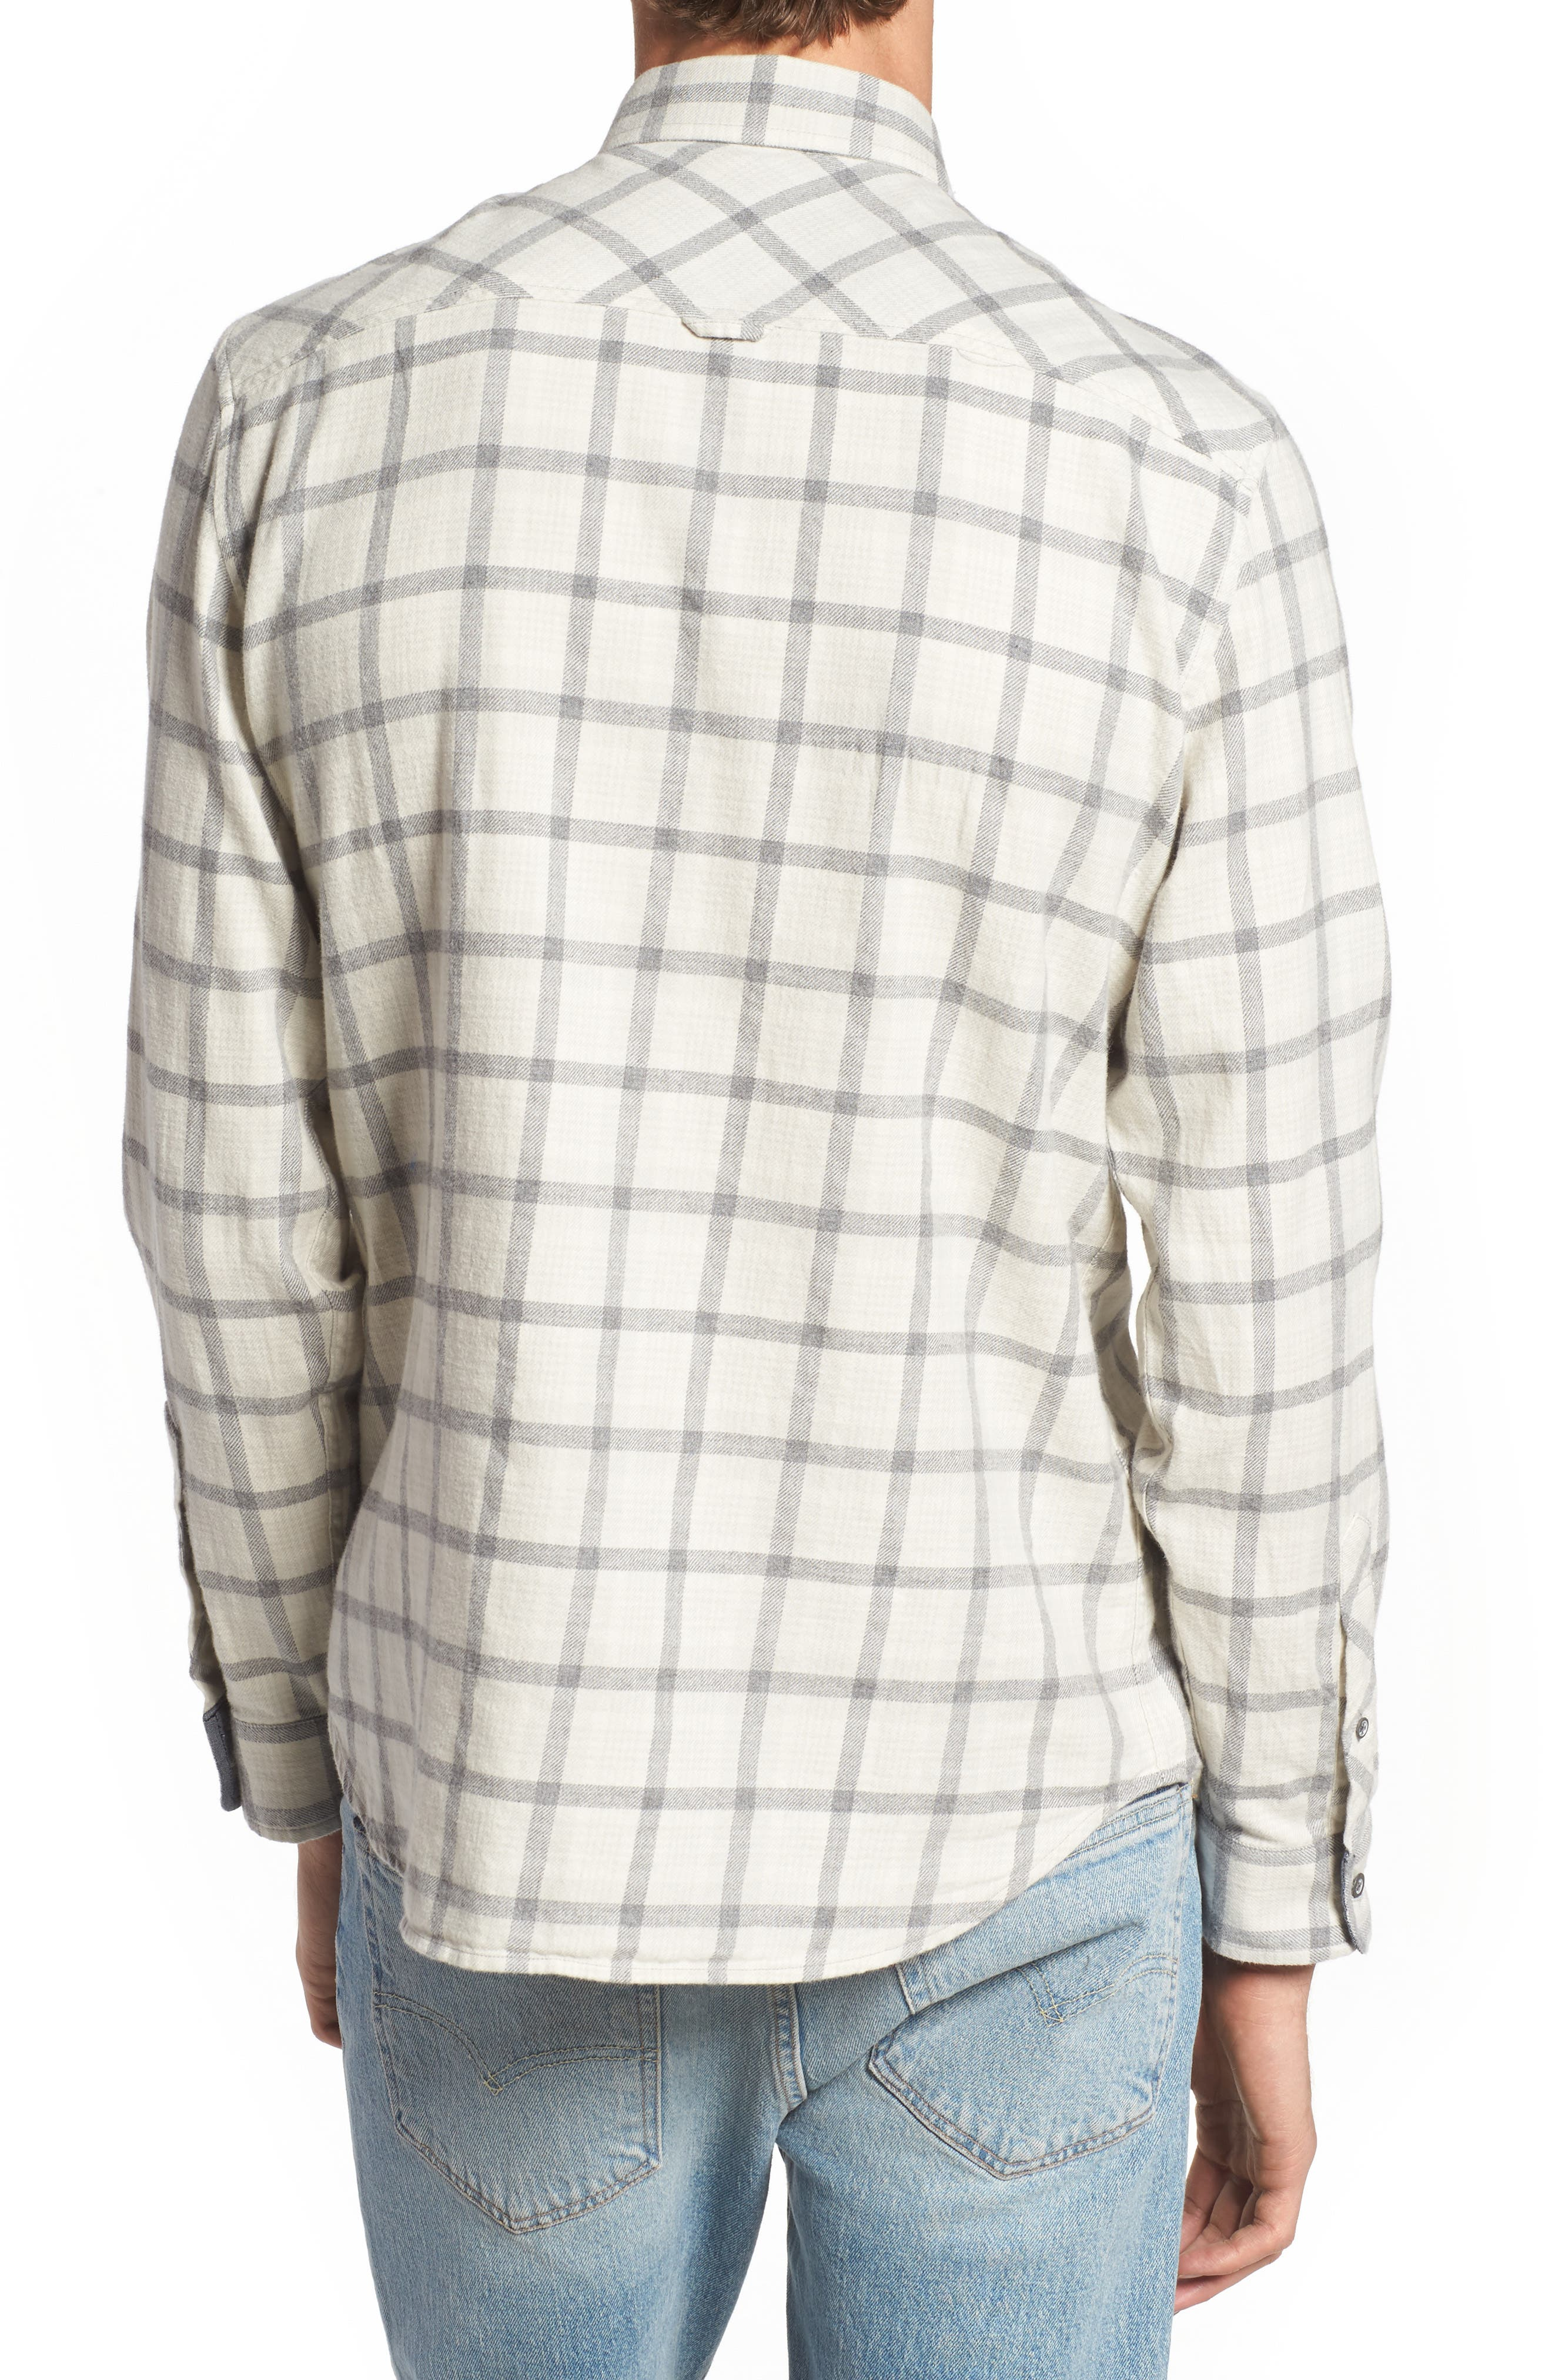 Grady Slim Fit Plaid Sport Shirt,                             Alternate thumbnail 2, color,                             100